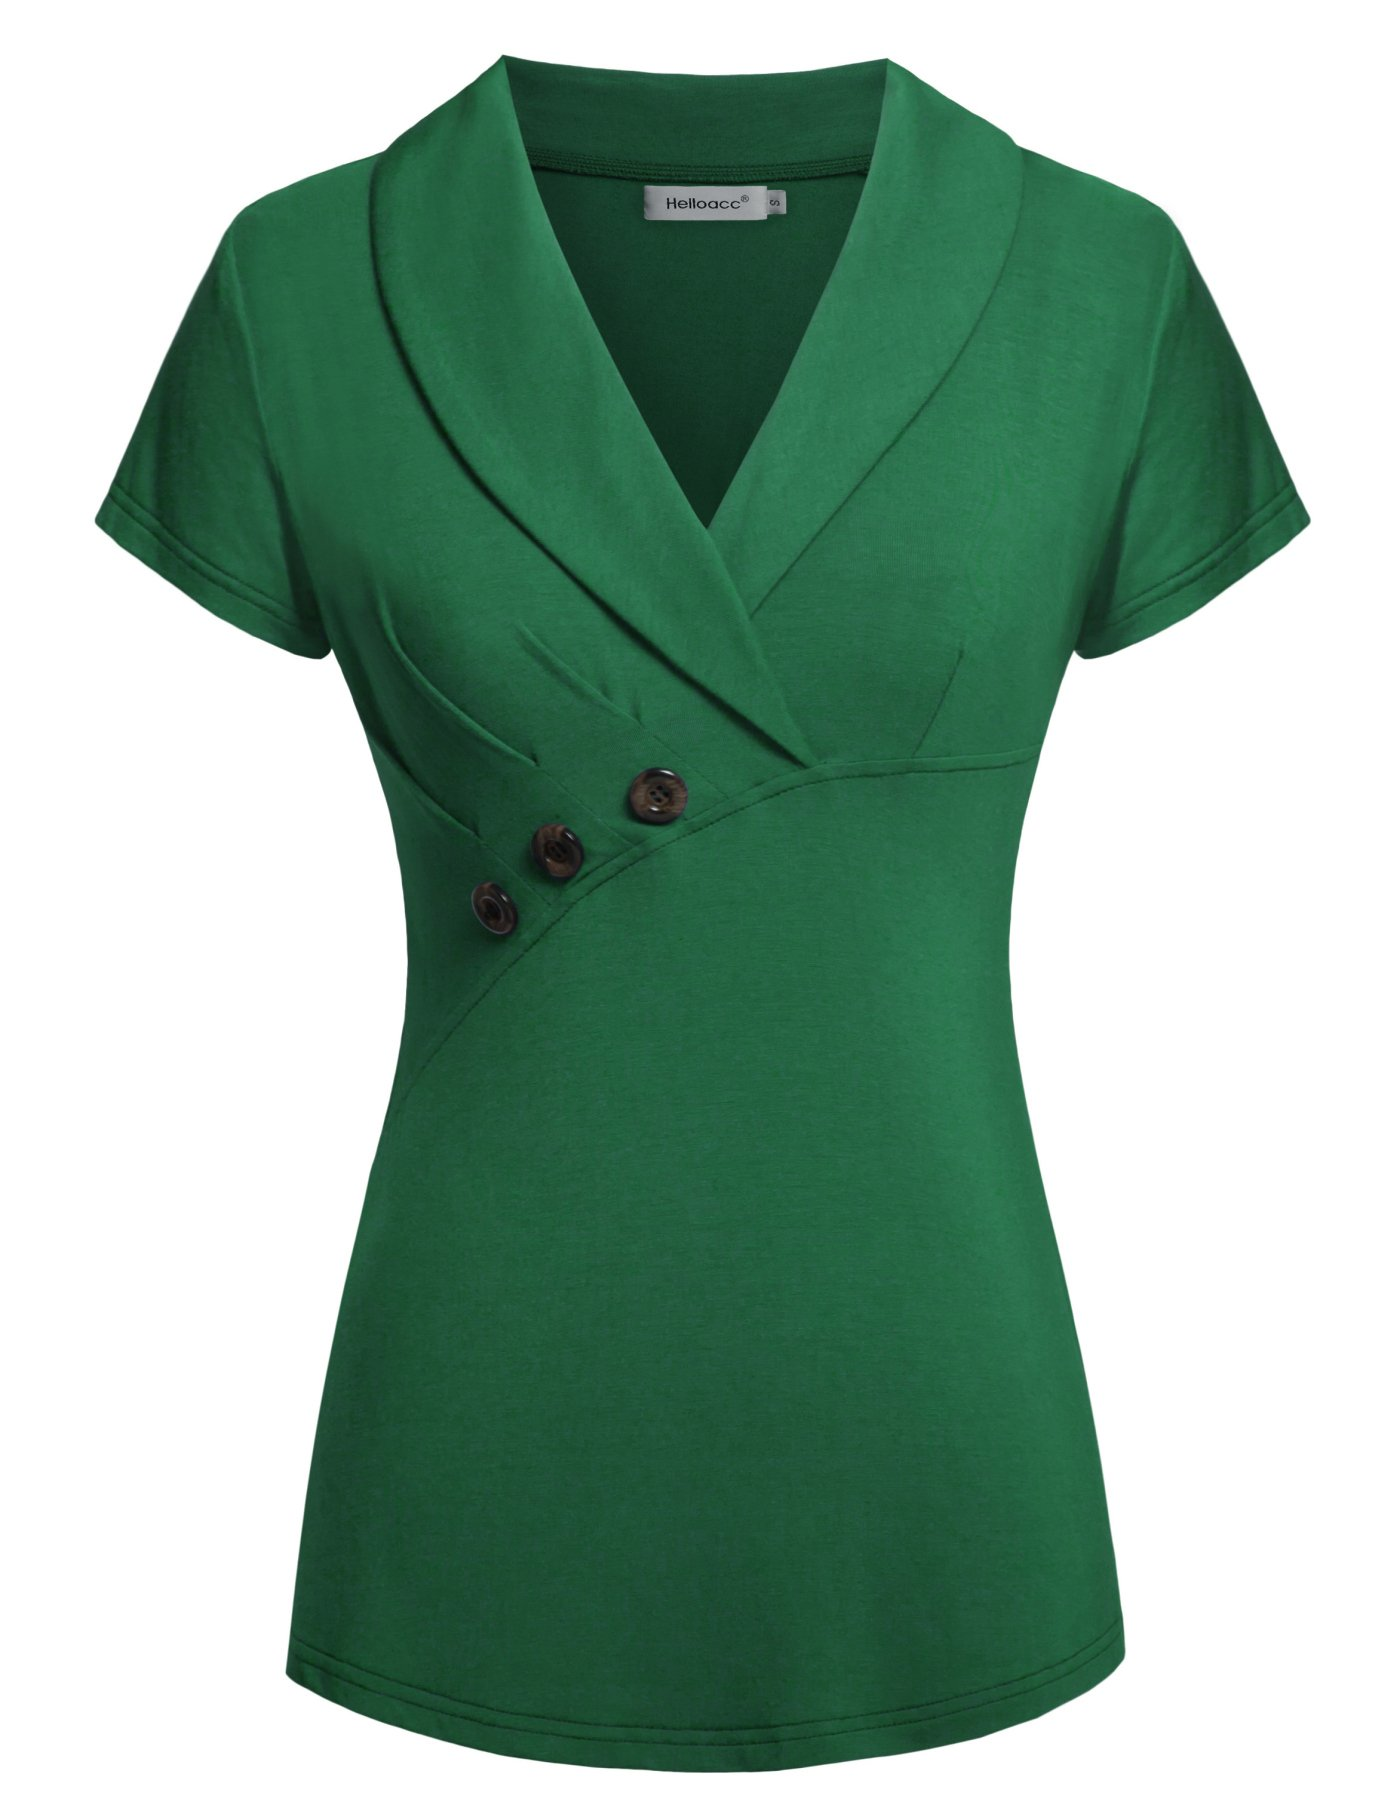 Helloacc Work Blouse Short Sleeve, Women Tunic V Neck Elegant Shirts Summer Button Trim Solid Color Basic Office T Shirt Tops Green L